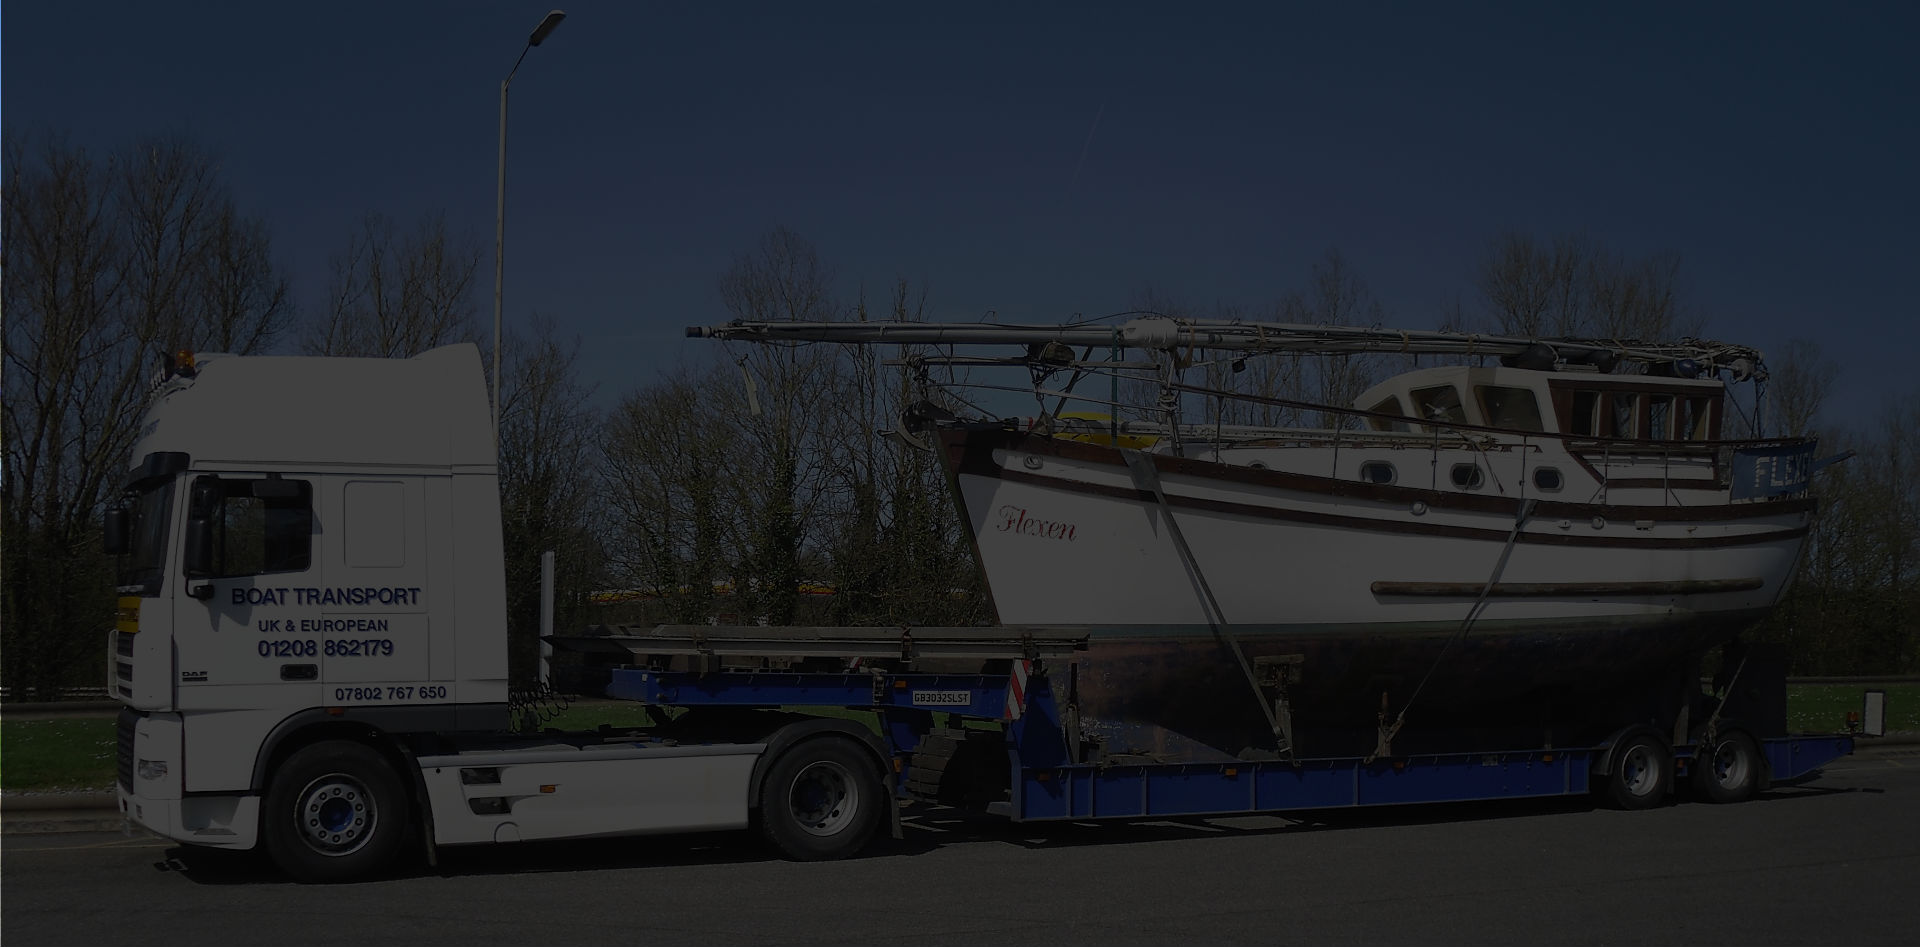 Boat Transport Service - Instant Car Shipping & Auto